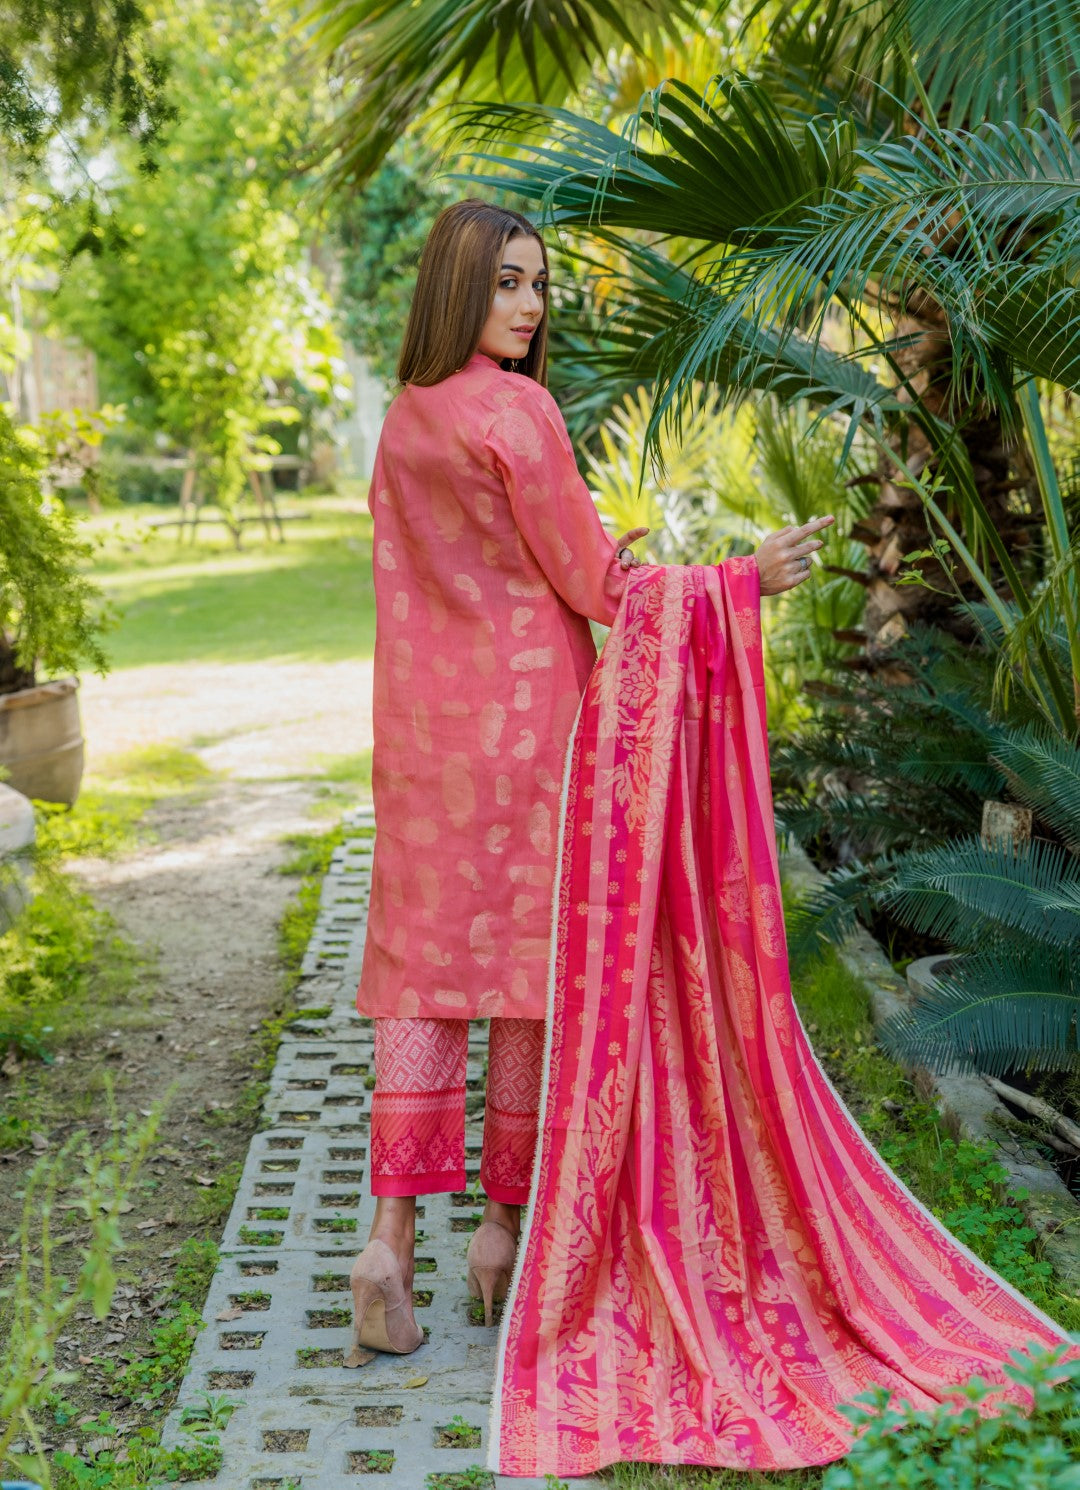 3 PIECE / SHIRT, TROUSER, DUPATTA